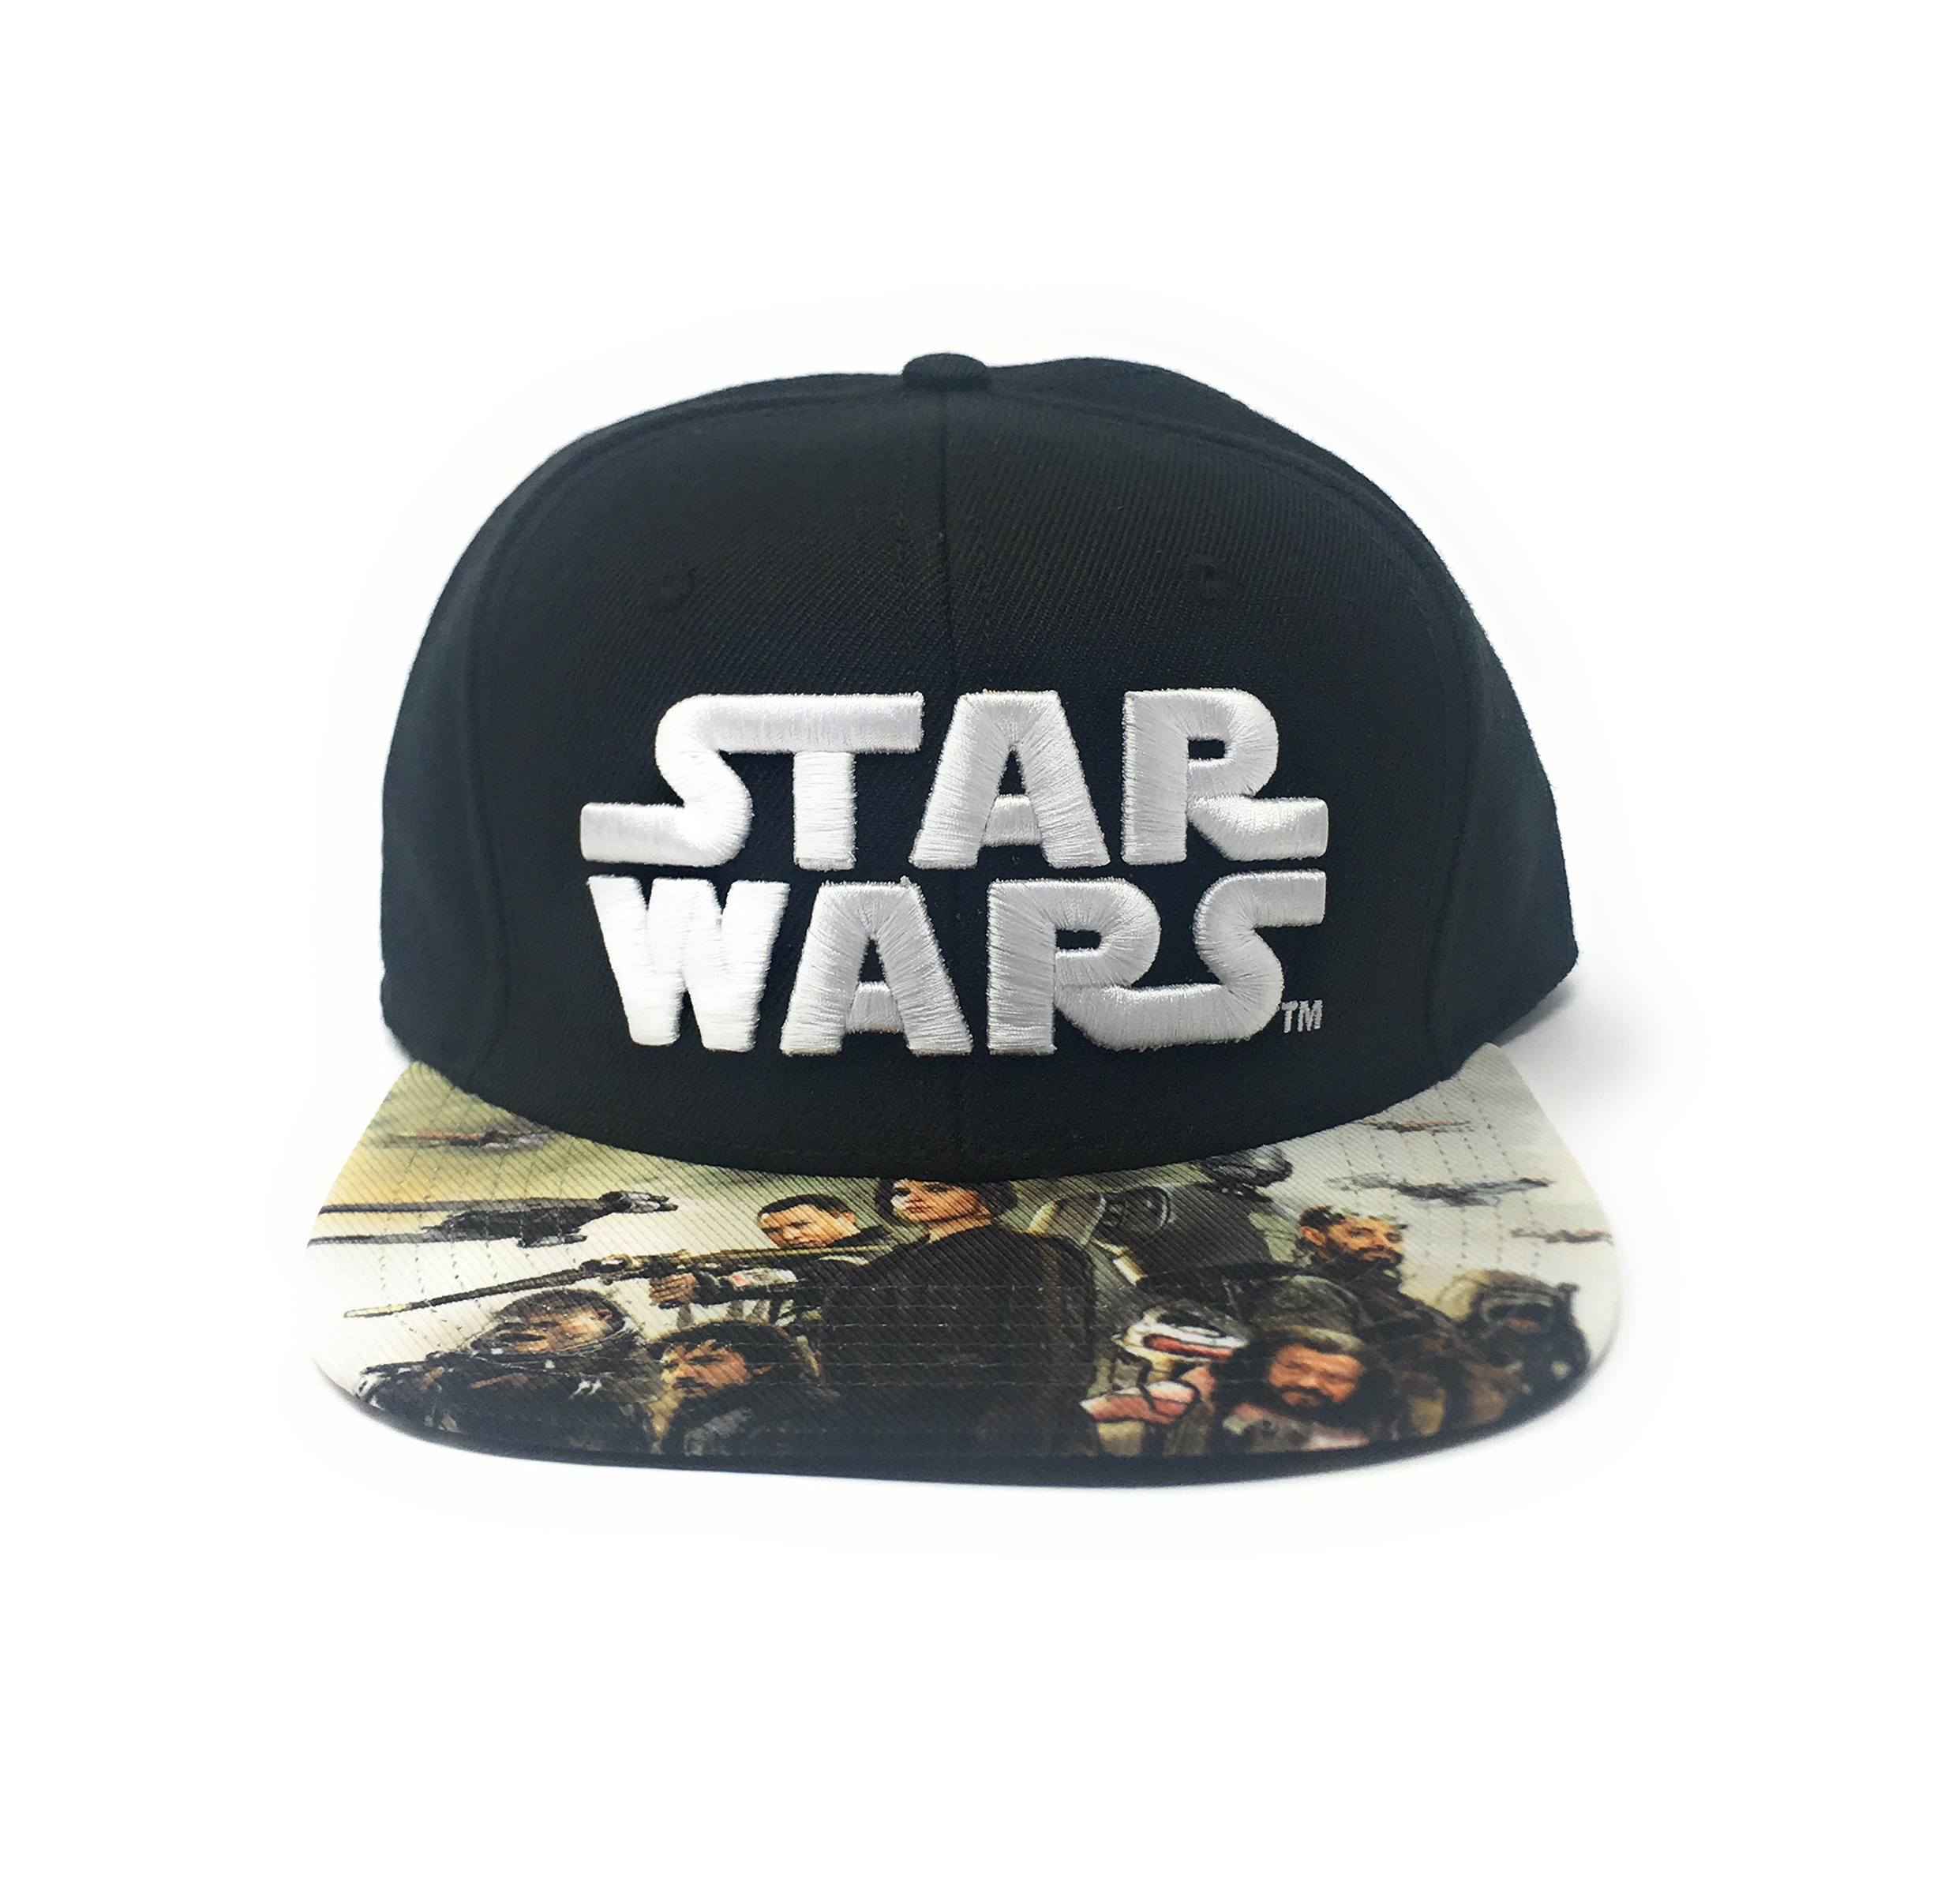 a47dc2b5241 Bioworld Licensed Star Wars - Rogue One - Sublimated Brim Black ...